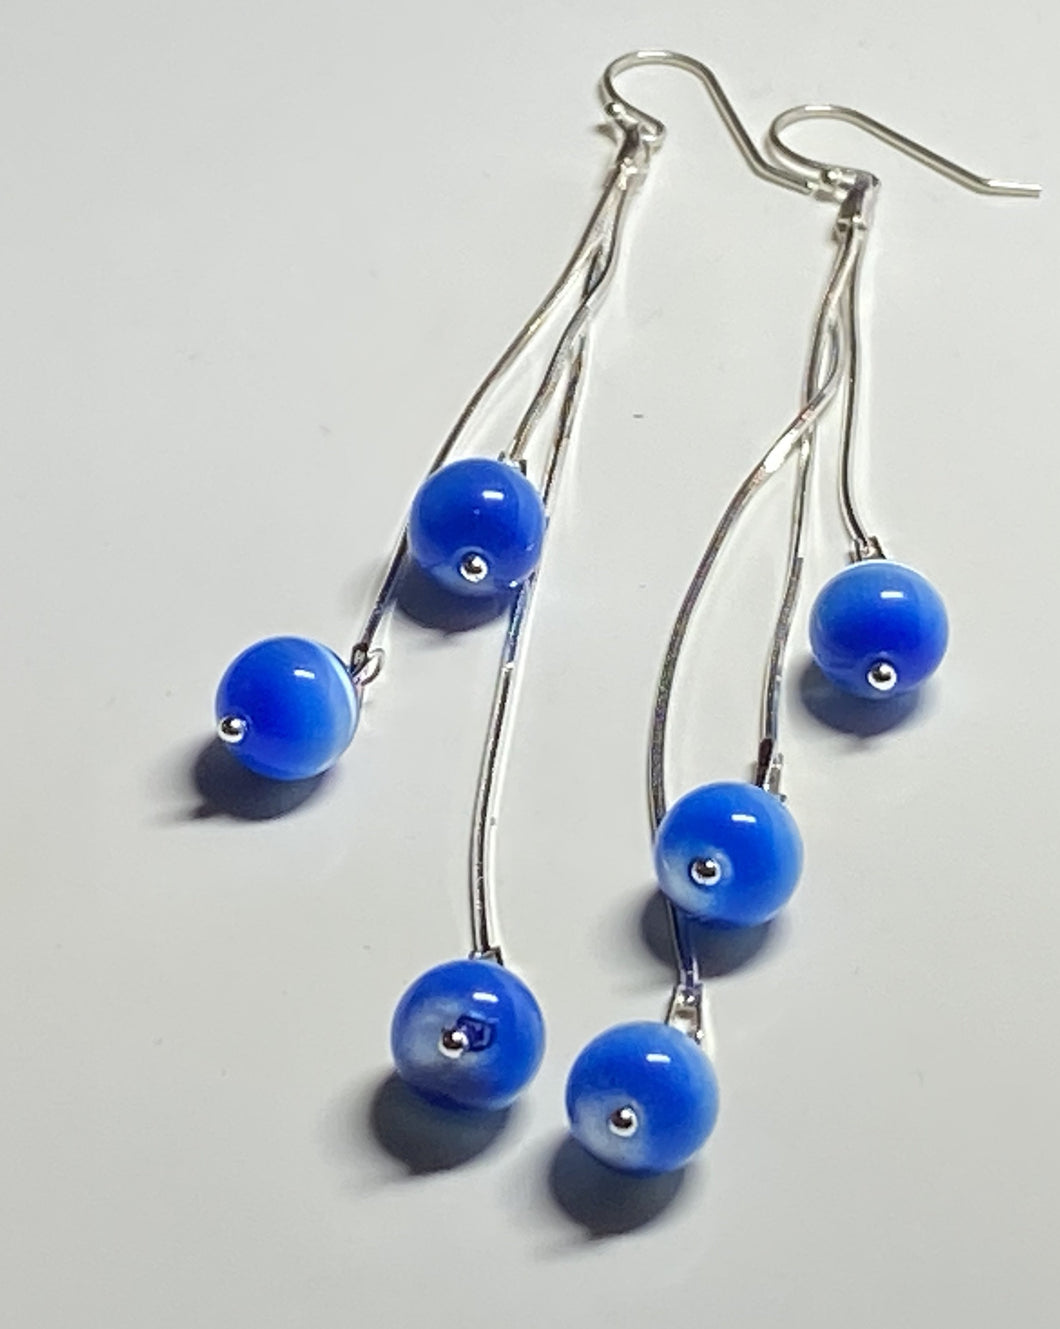 Long blue and silver earrings, 3 inches long, three round beads dangling from silver.